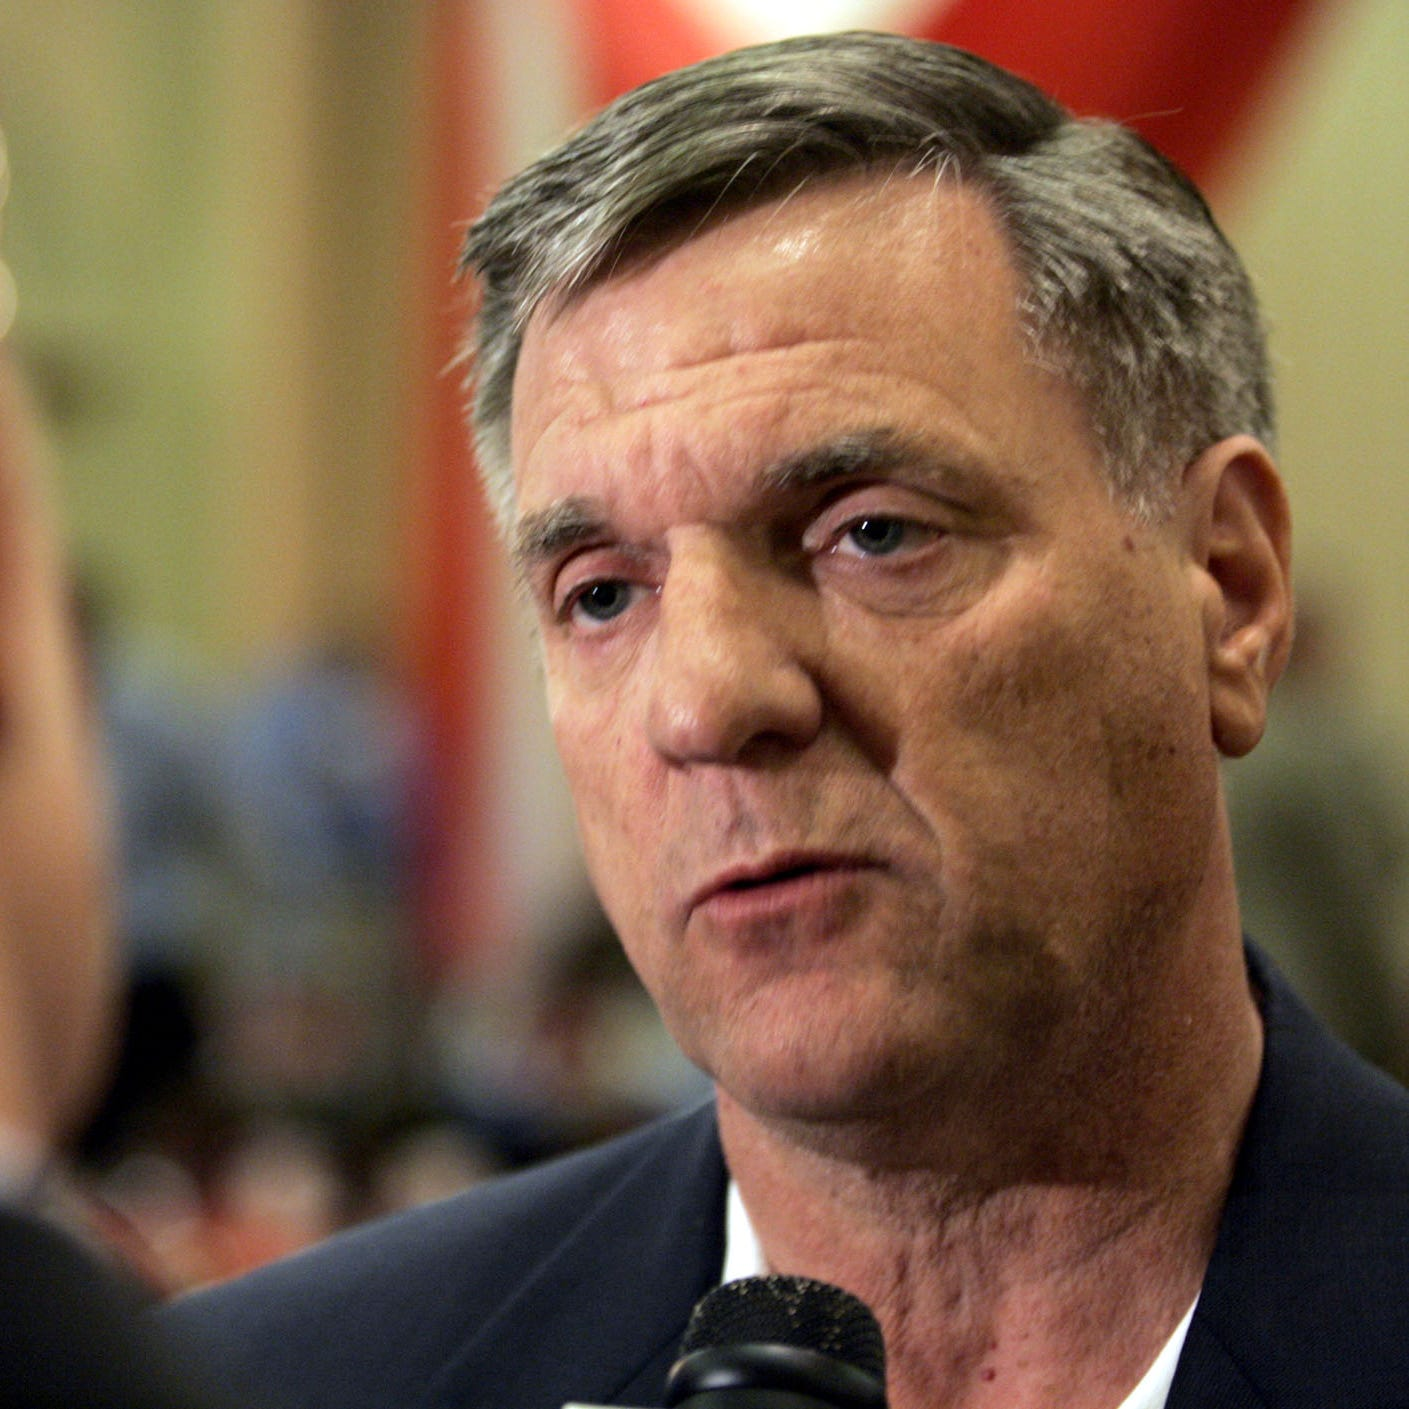 Ocean County GOP leader George Gilmore resigns from Election Board